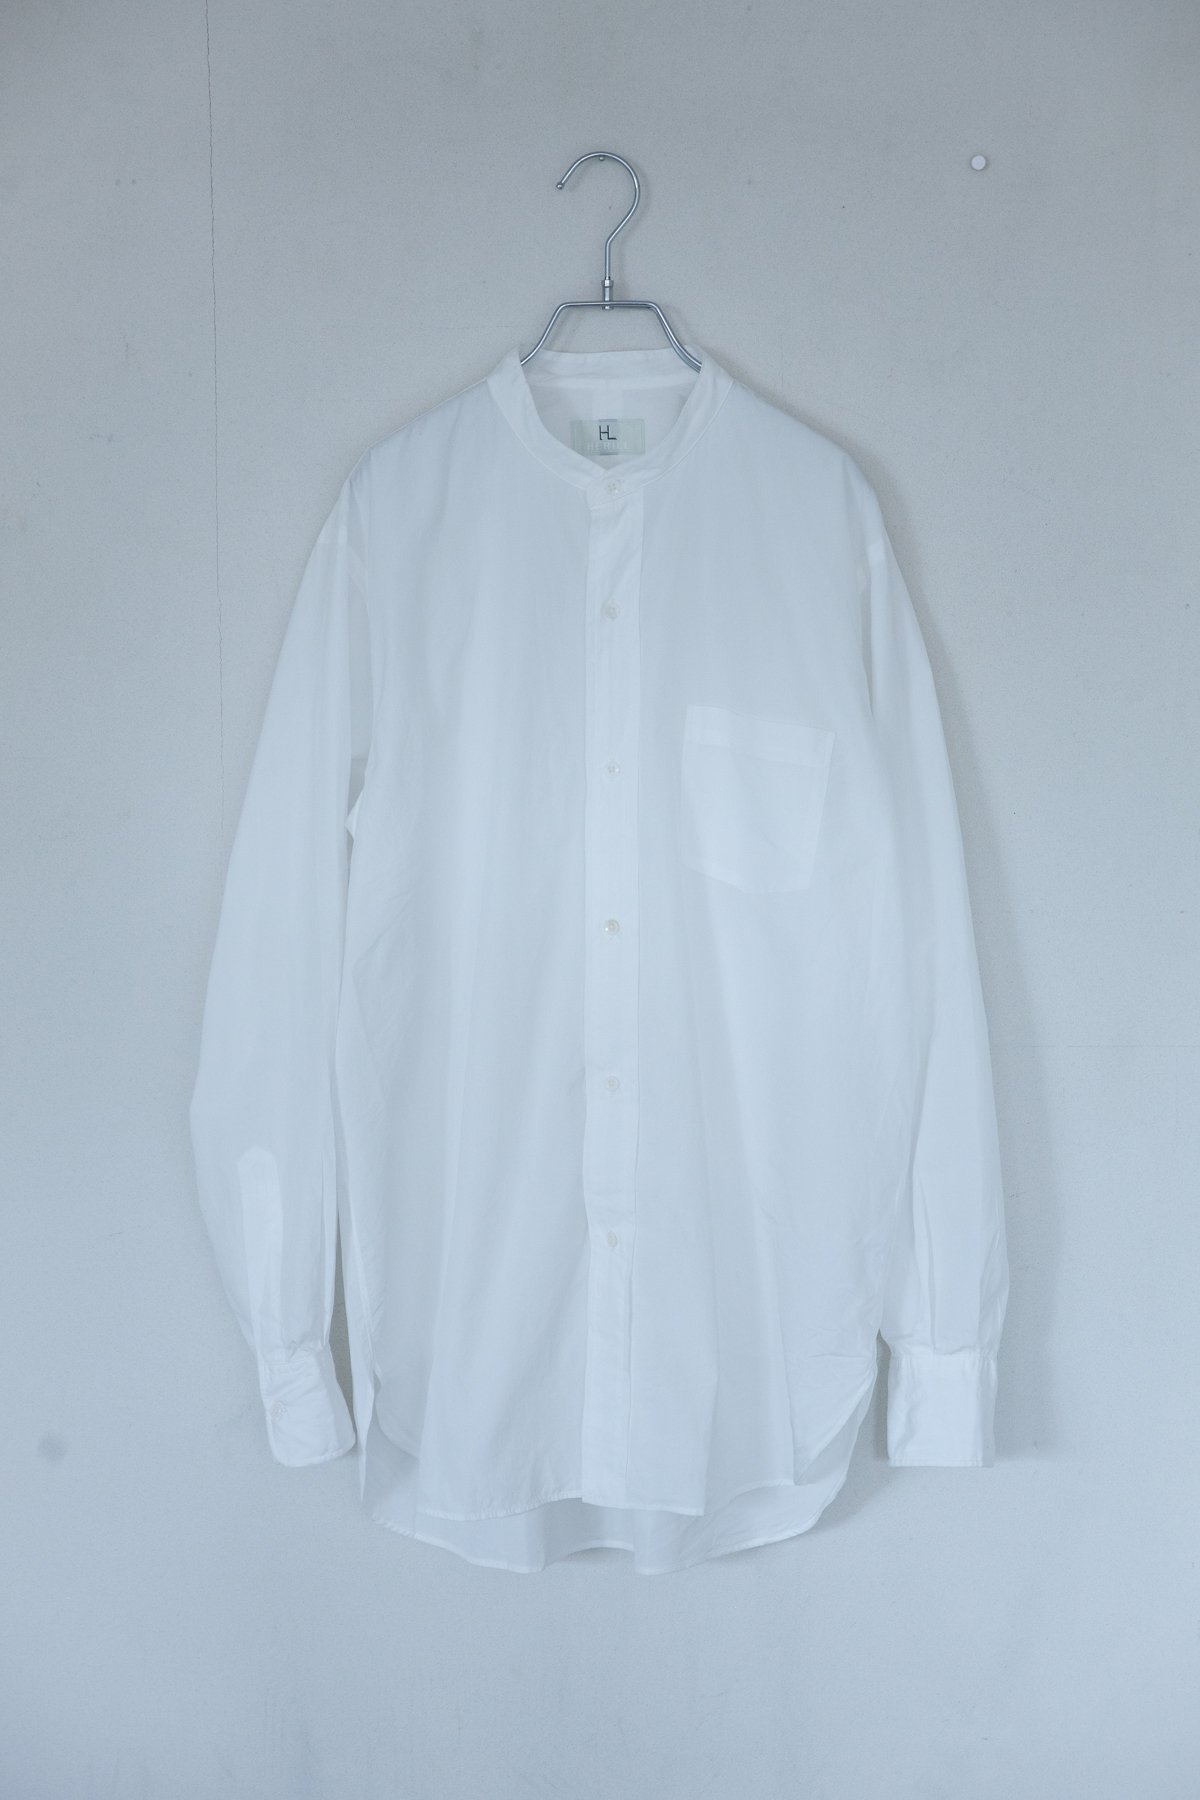 HERILL / Suvin Stand Coller Shirts